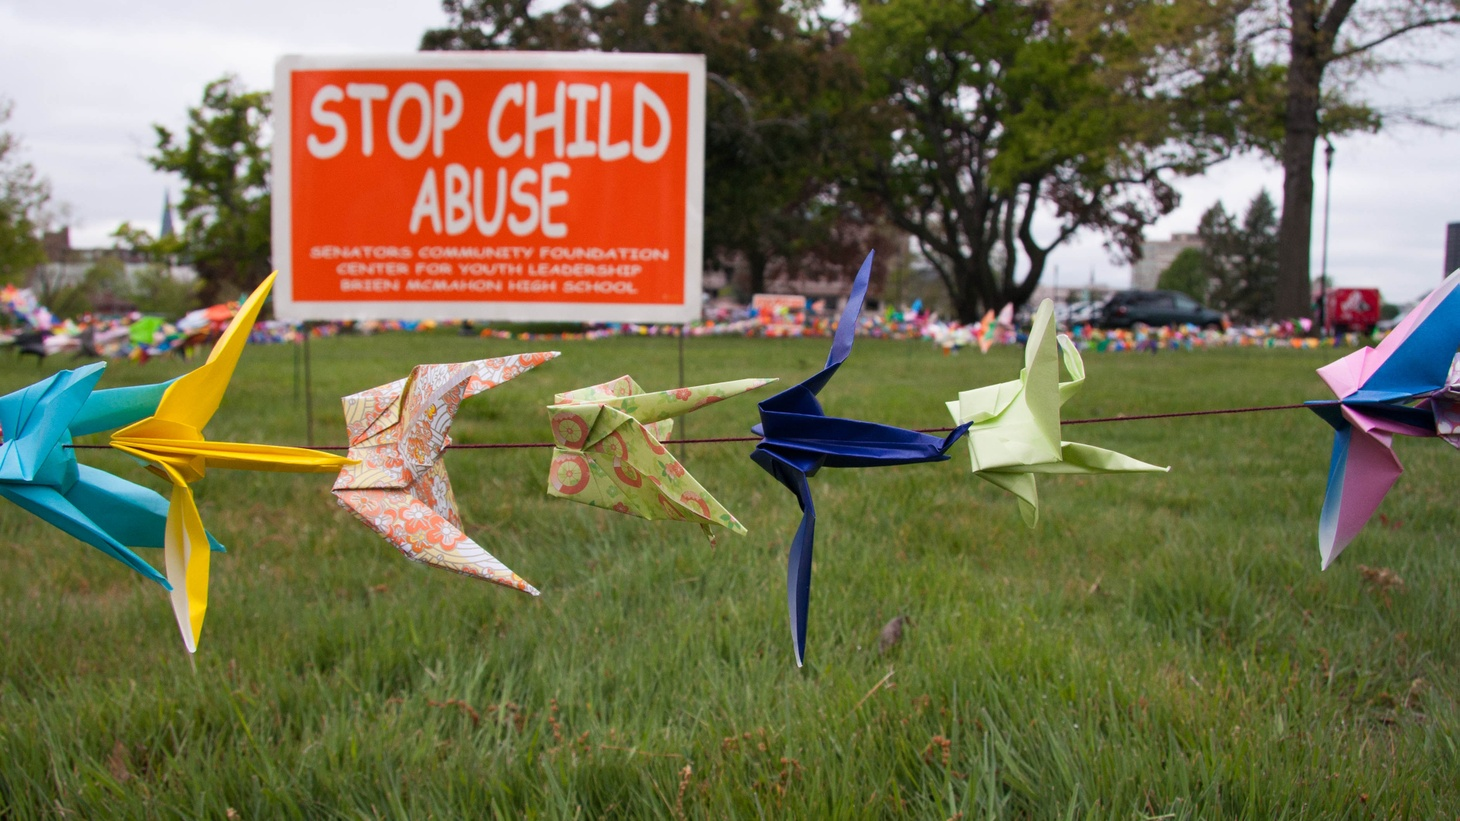 A Crane for Each Child; Students Seek End to Child Abuse.